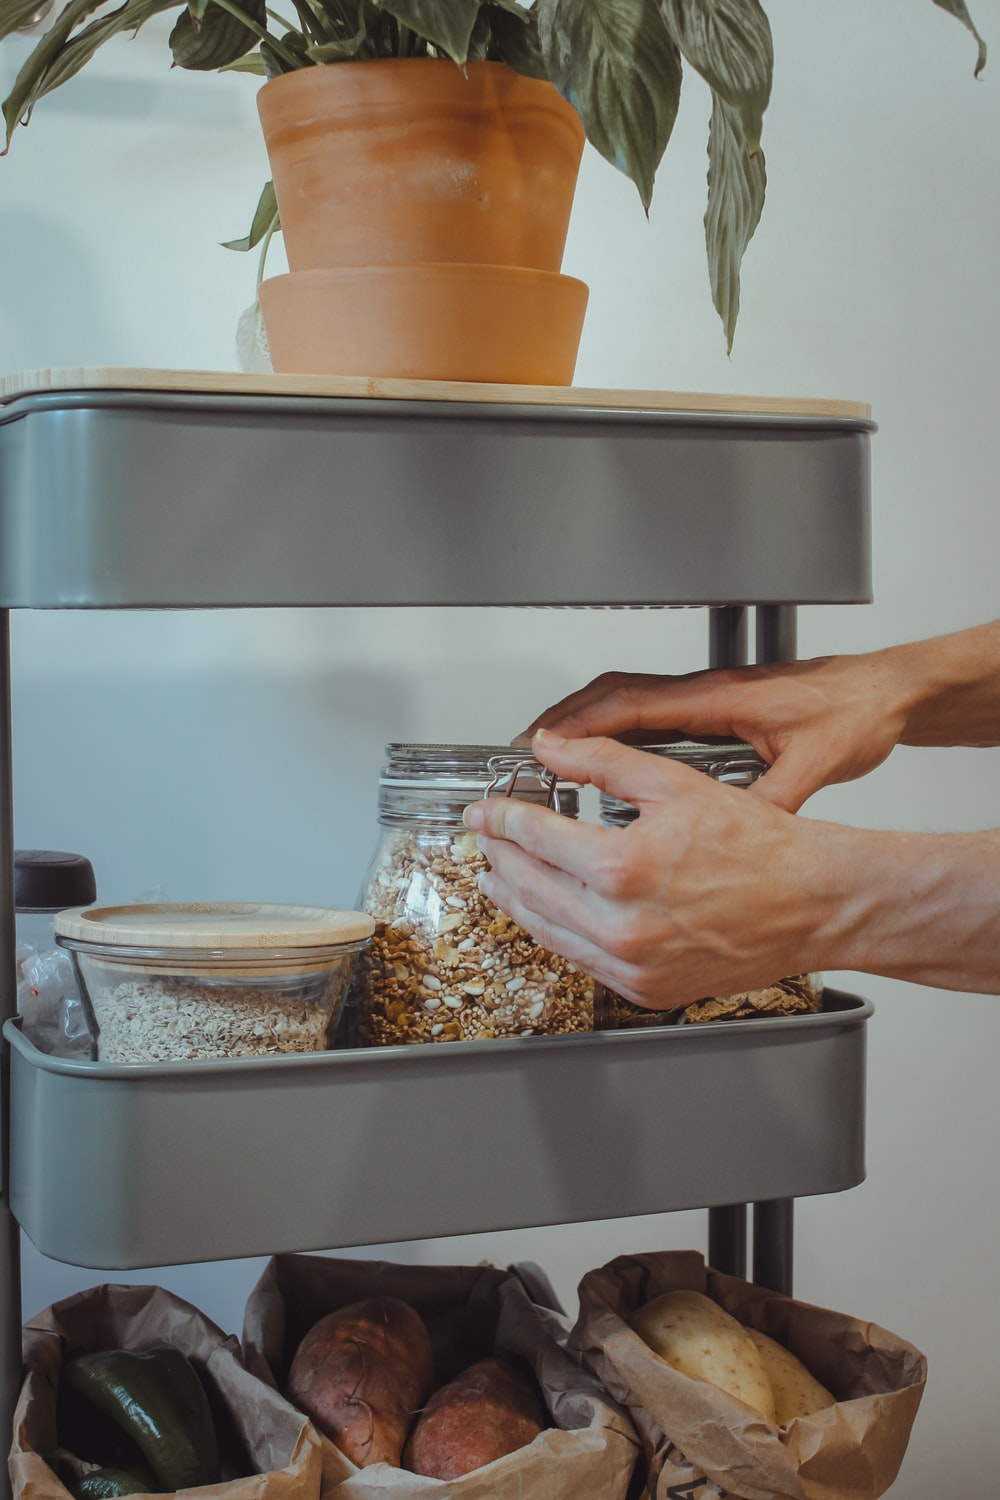 person holding stainless steel container